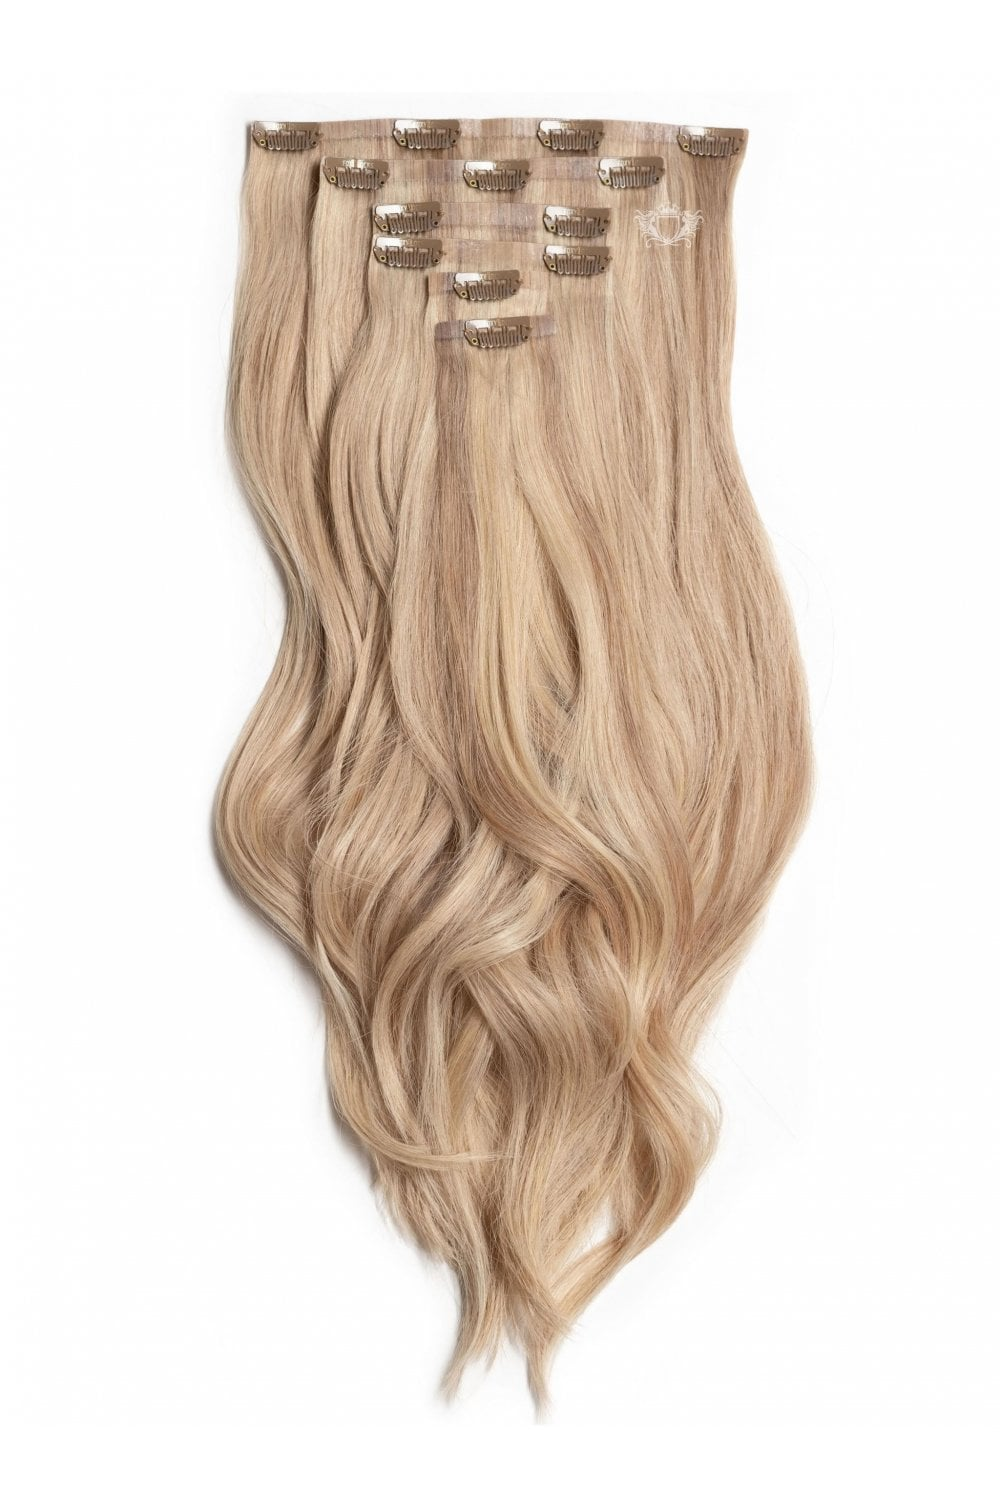 Latte Blonde Superior Seamless 22 Clip In Human Hair Extensions 230g